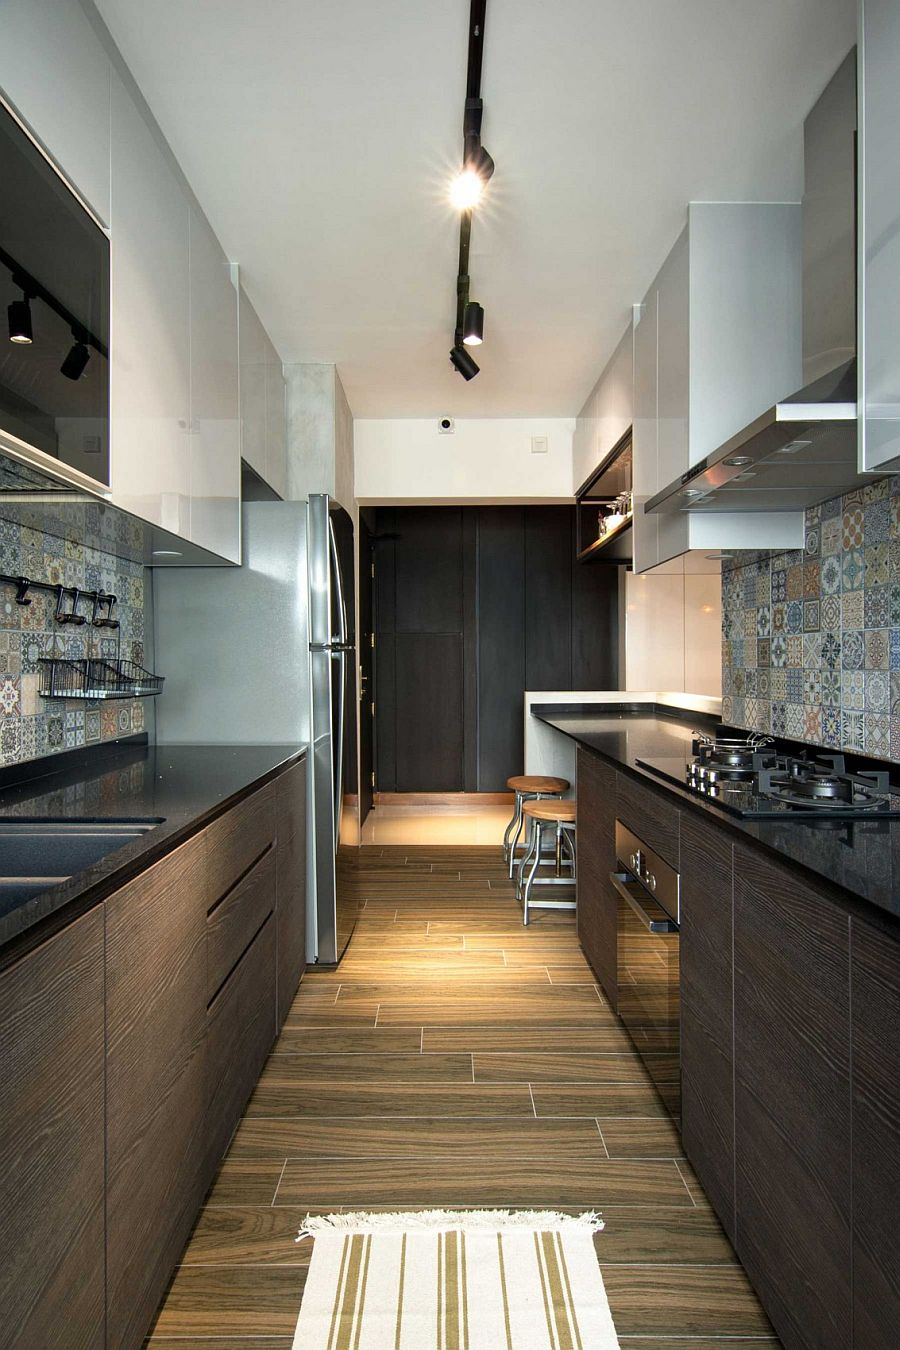 Kitchen Tiles Singapore - Interior Design